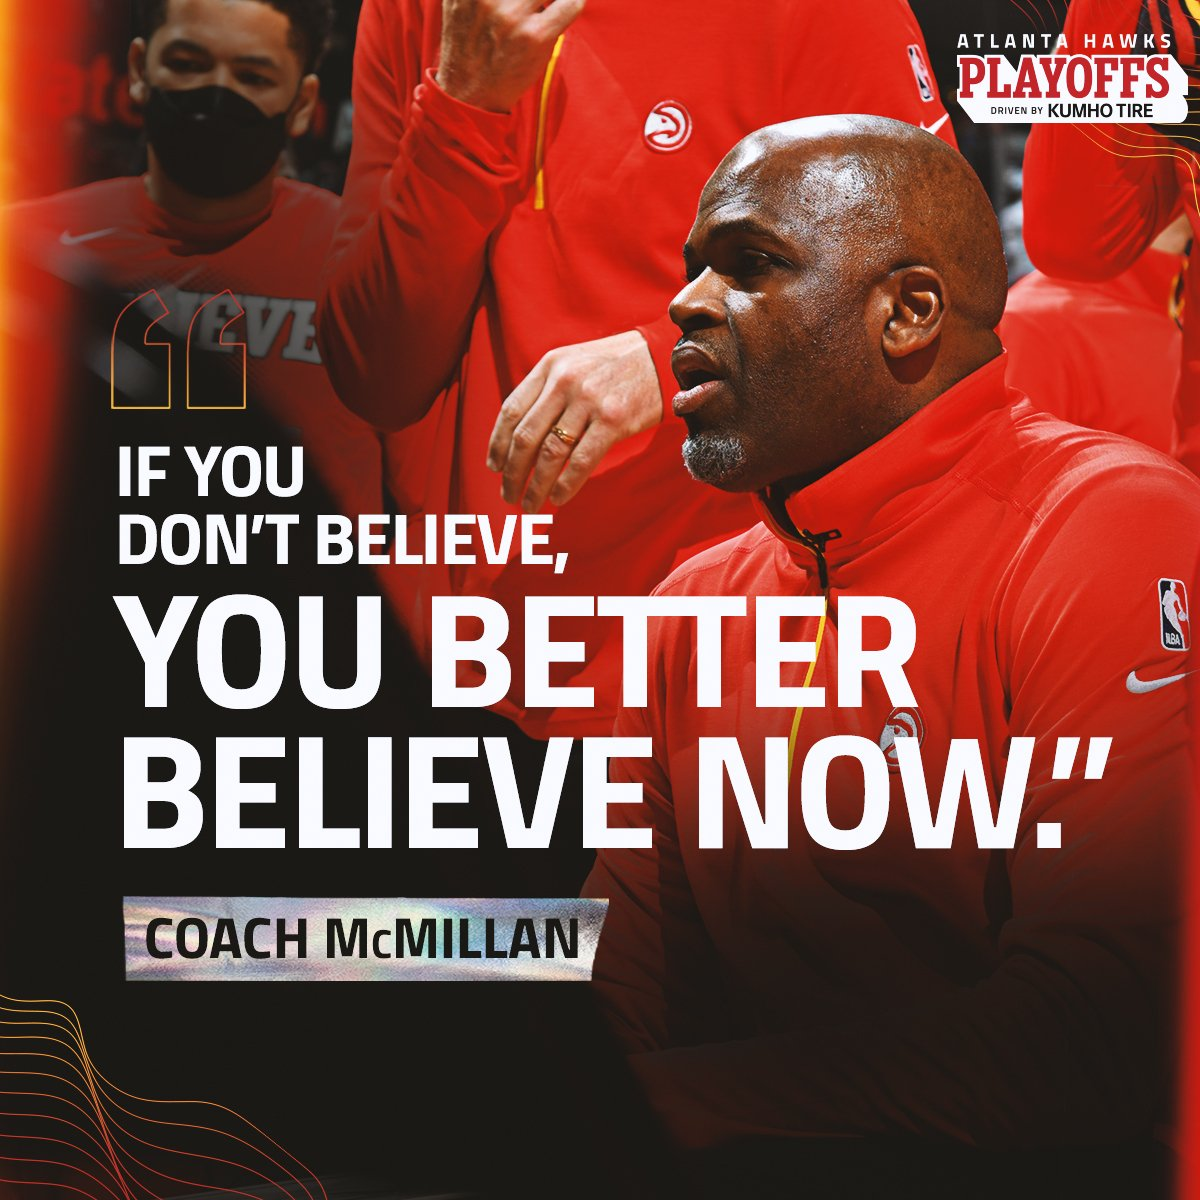 GOOD MORNING.  IT'S TIME TO #BELIEVEATLANTA https://t.co/GN7IXIYthi